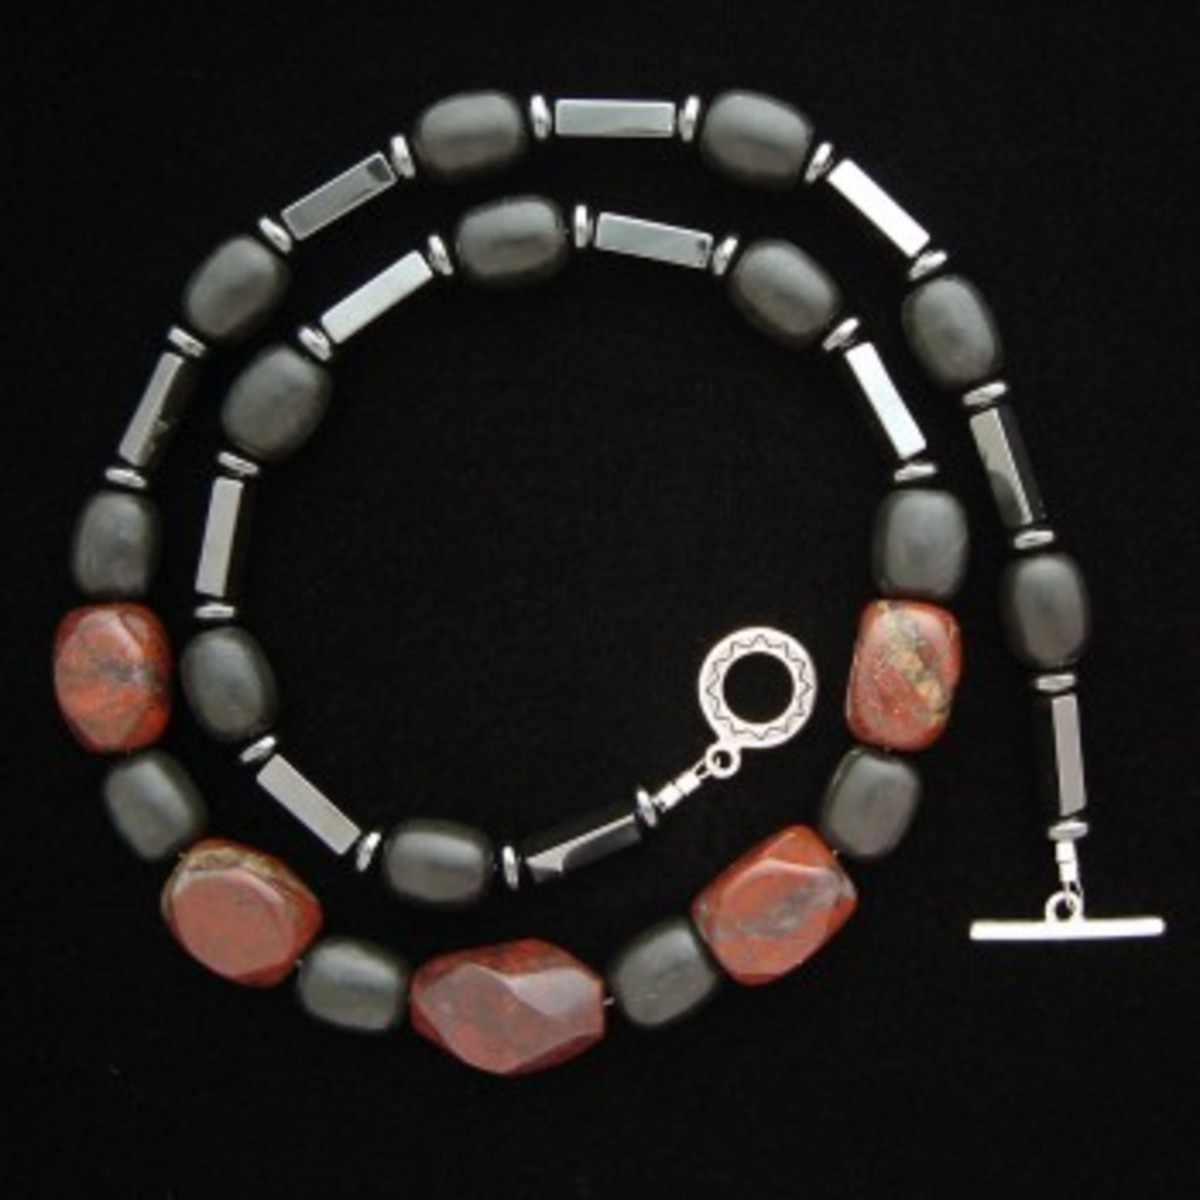 Poppy jasper, hematite, and onyx necklace coiled neatly to fit into a smaller image frame.